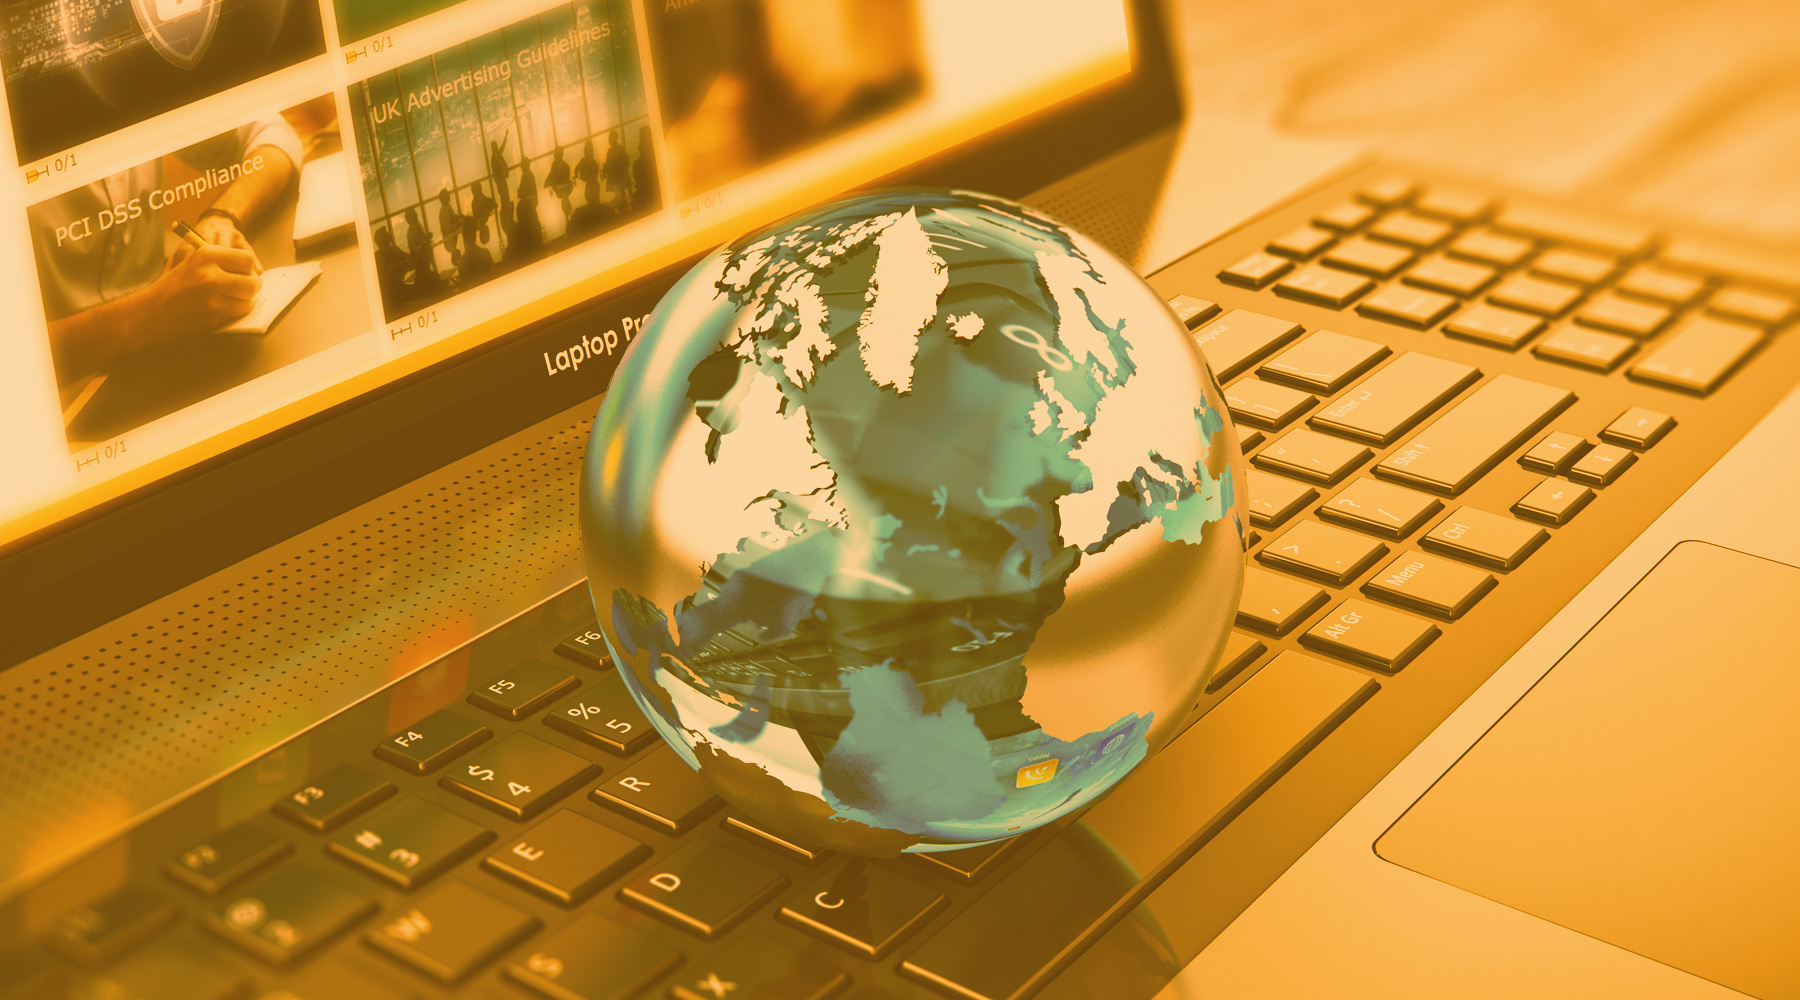 Global Training: IGA eLearning Courses Reaches Staff In 46 Countries